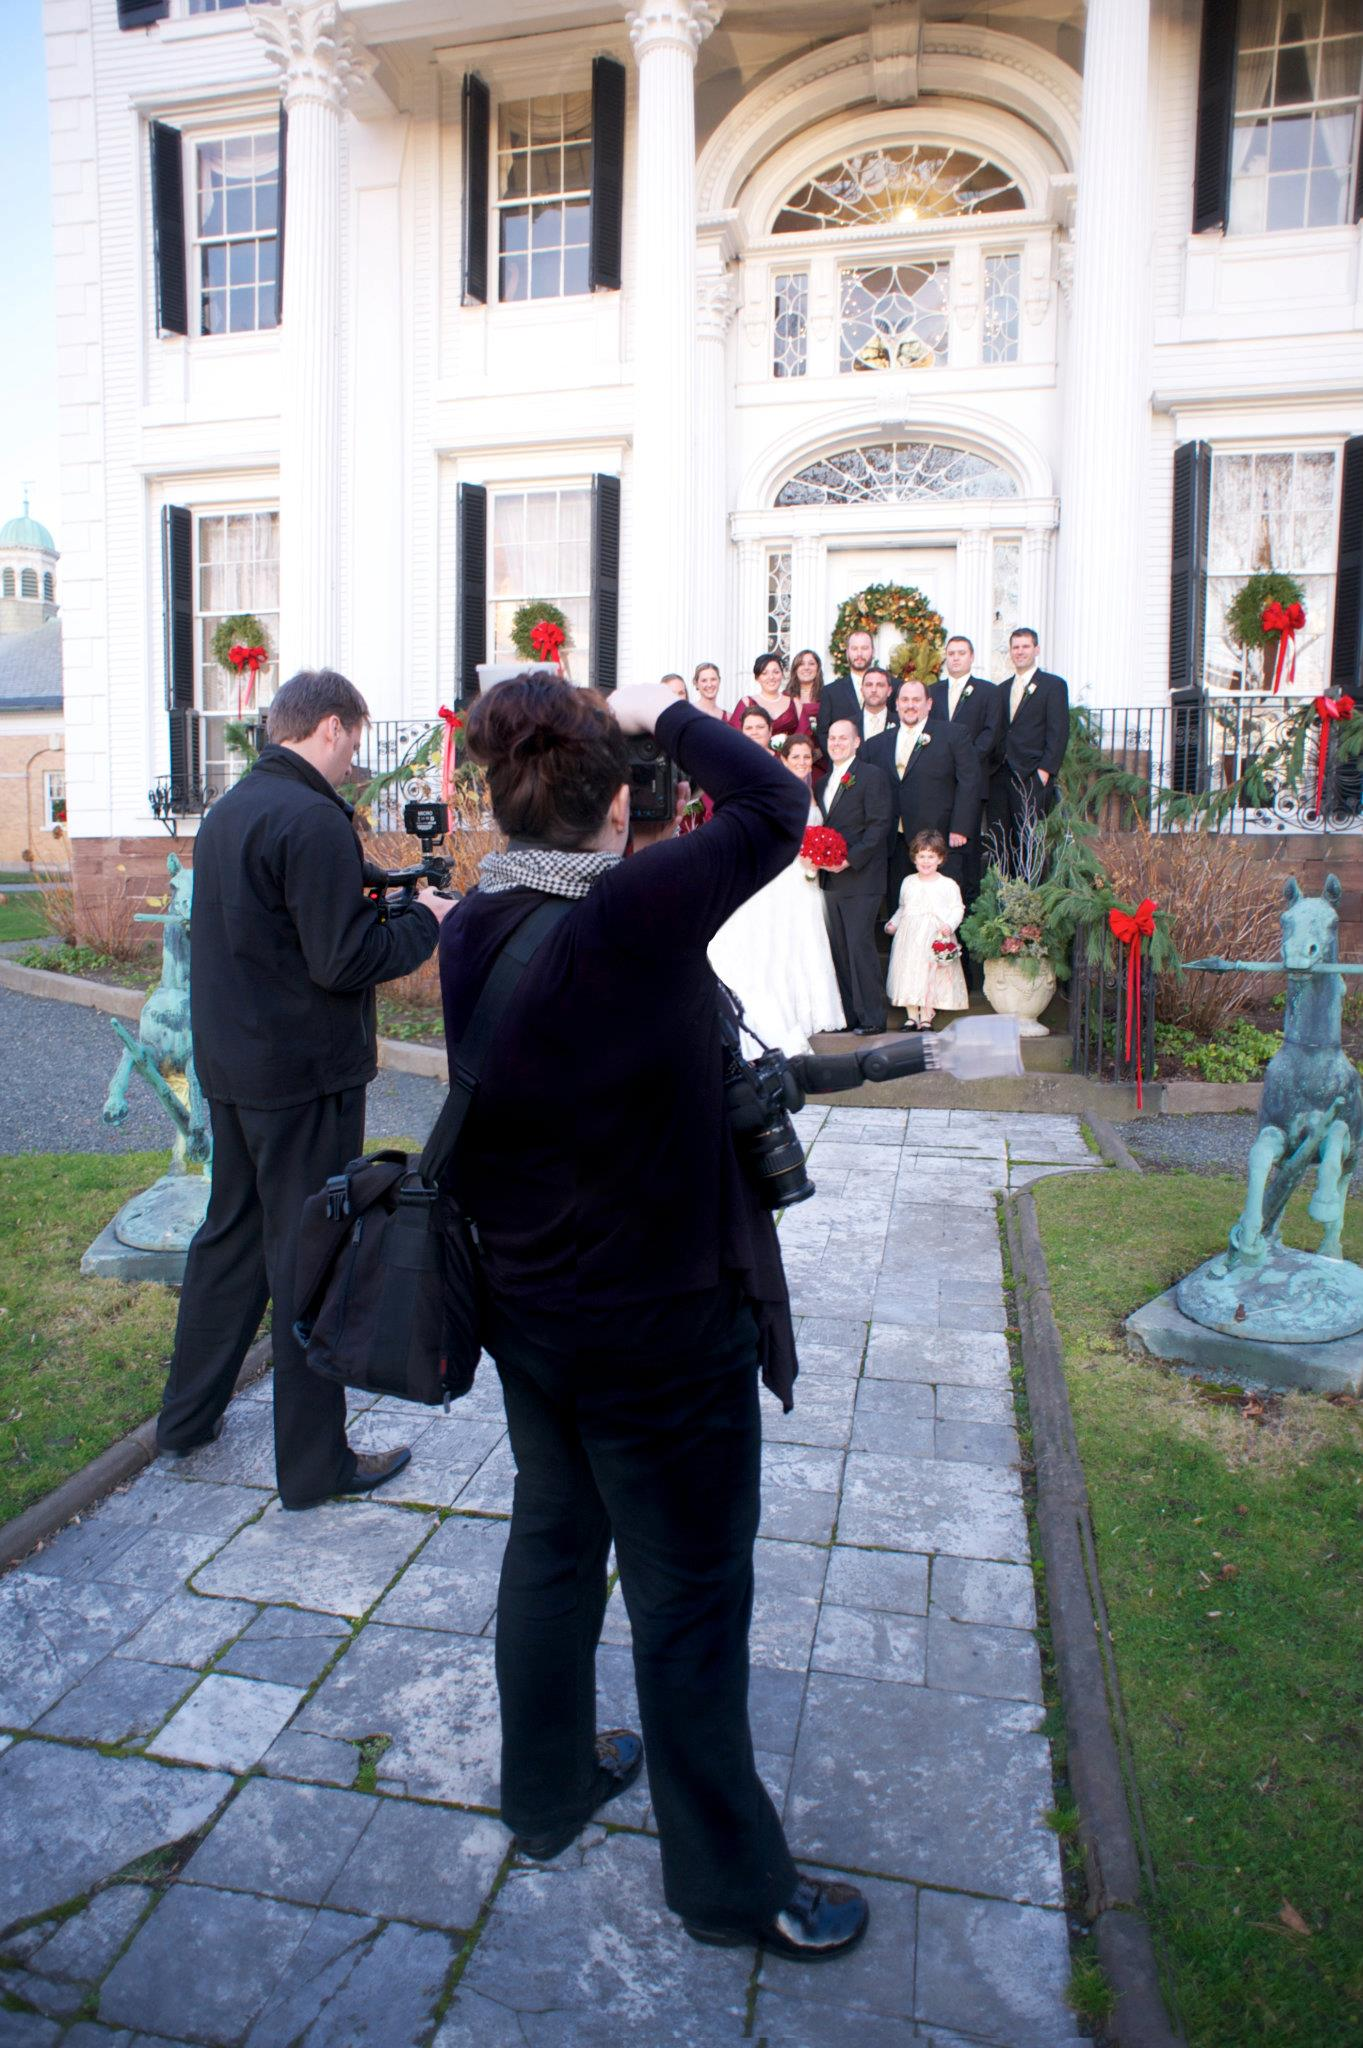 Amber and her cinematography shoot crew shooting a wedding at Linden Place, Bristol, Rhode Island.